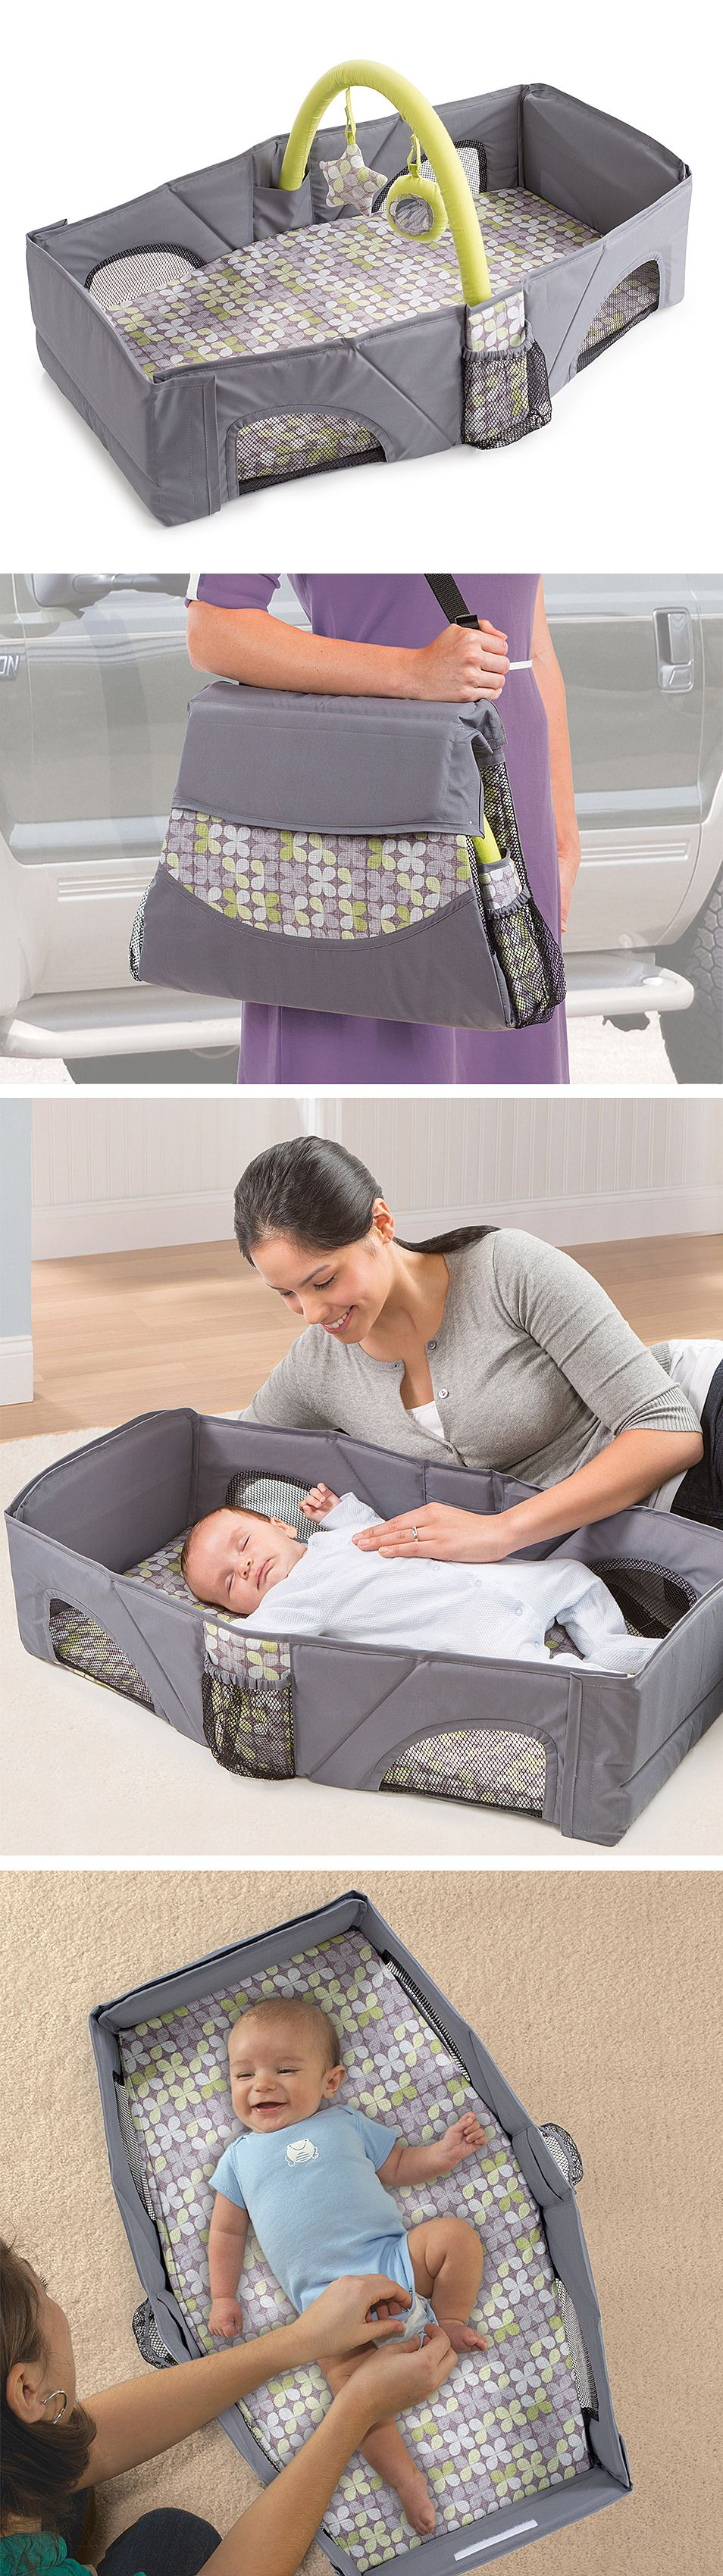 folding travel crib bed diaper play station folds up to the